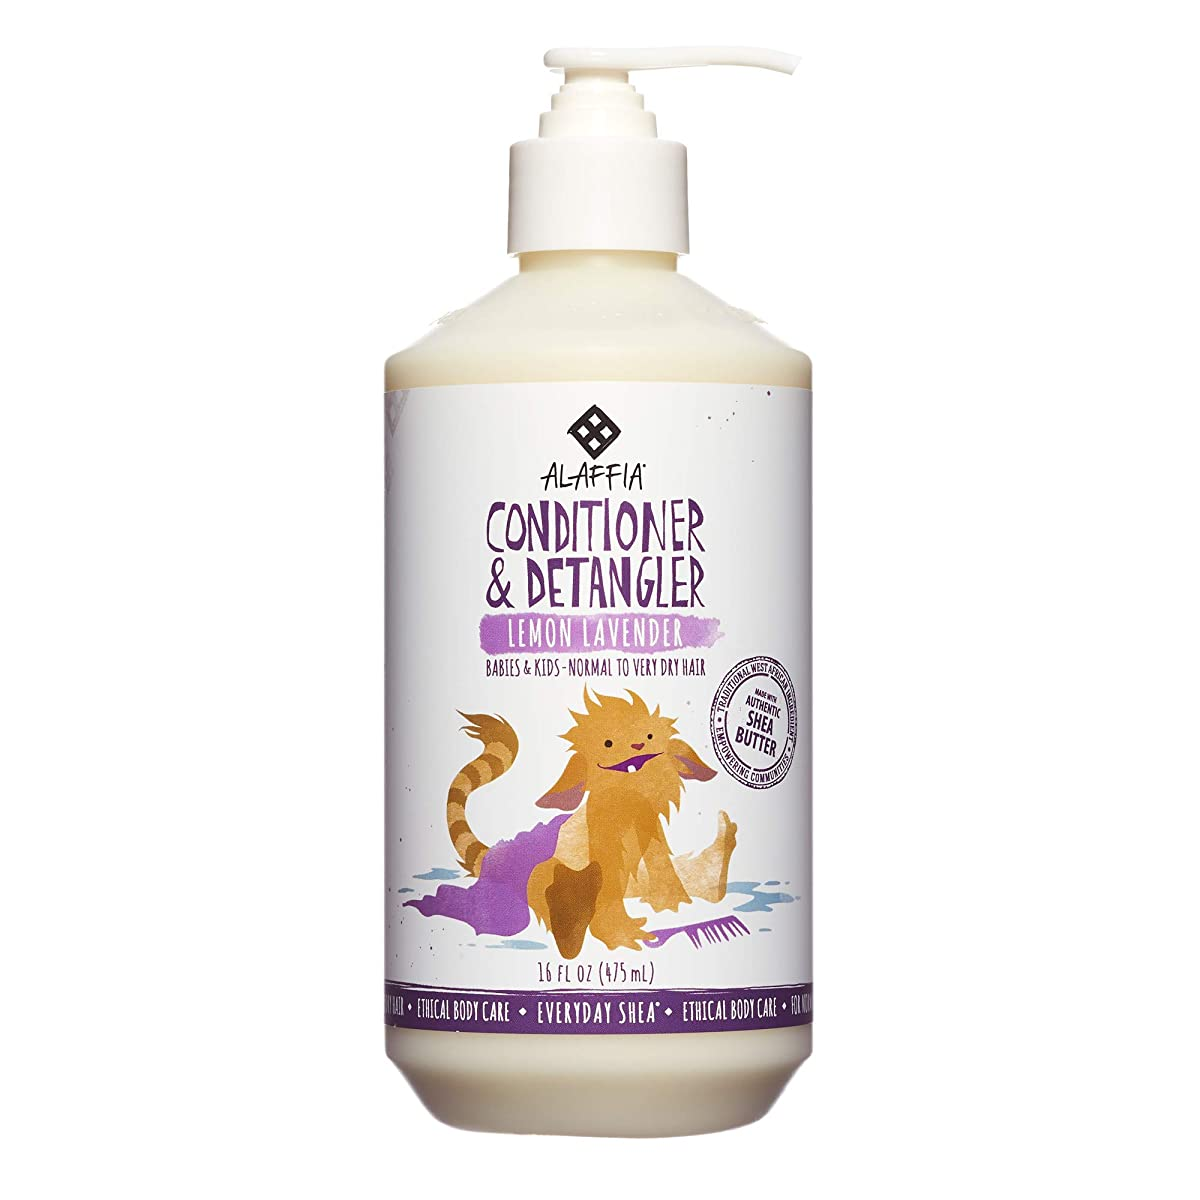 称賛罰小説Everyday Shea, Conditioner & DeTangler, Lemon Lavender, 16 fl oz (475 ml)